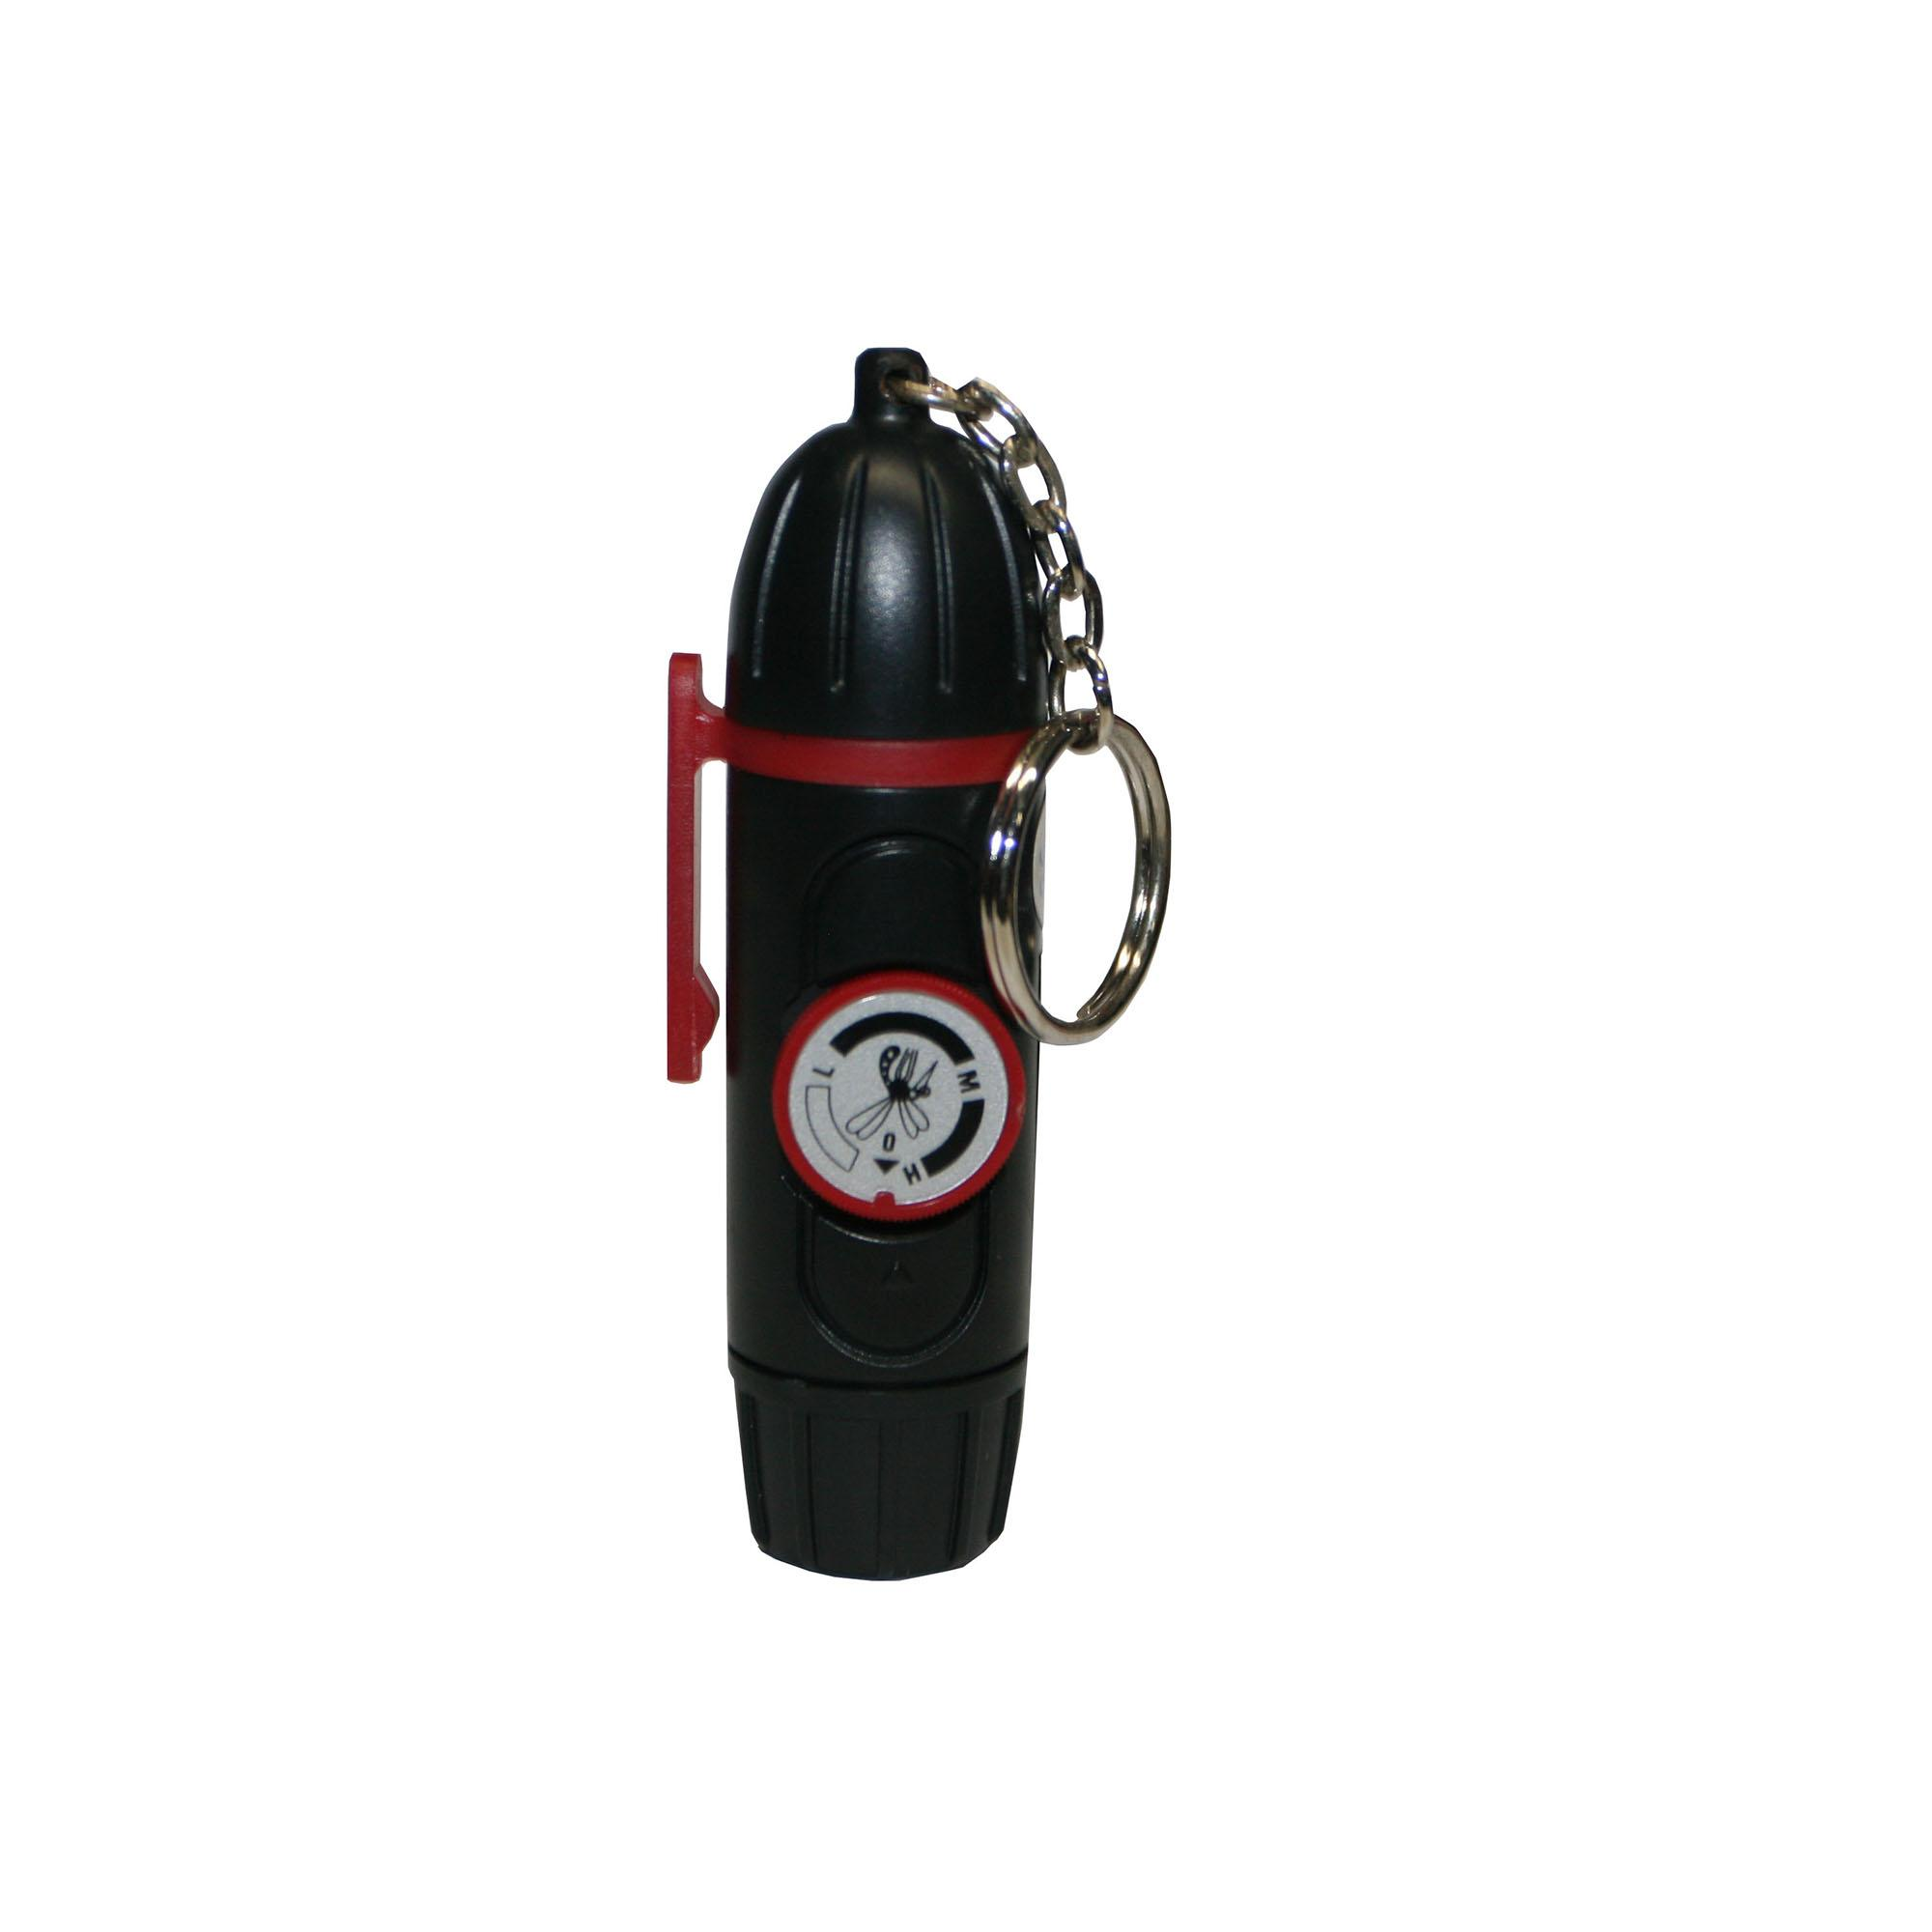 Newstar Mosquito Repeller With Torch And Keychain Mr-606l By E2 Shop.